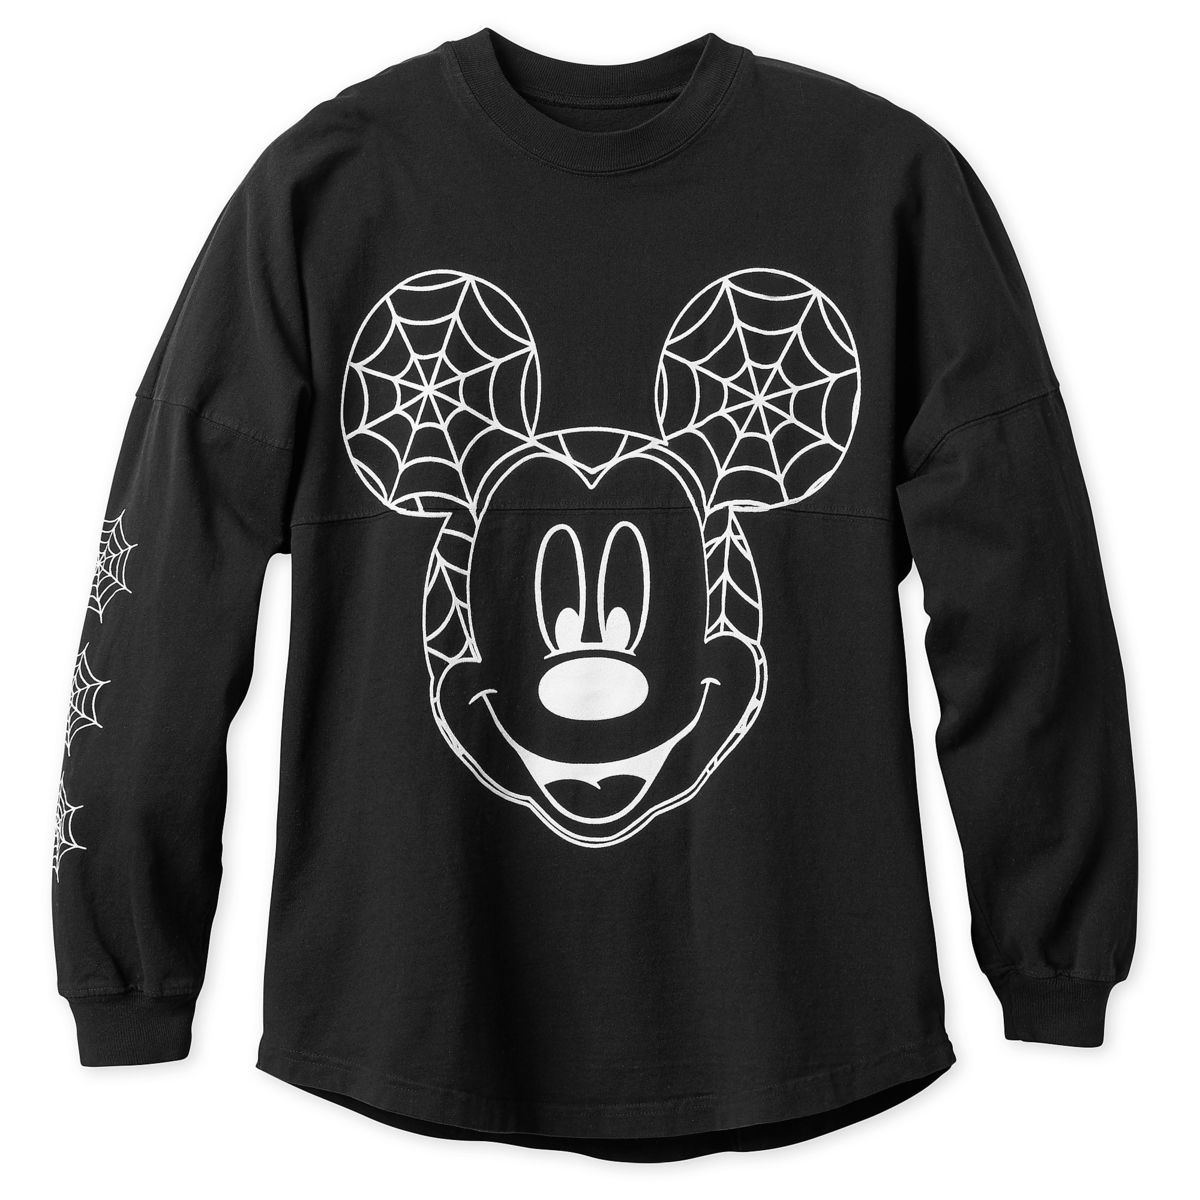 e719641d6 New Halloween Spirit Jersey, Tees and More Available on shopDisney ...